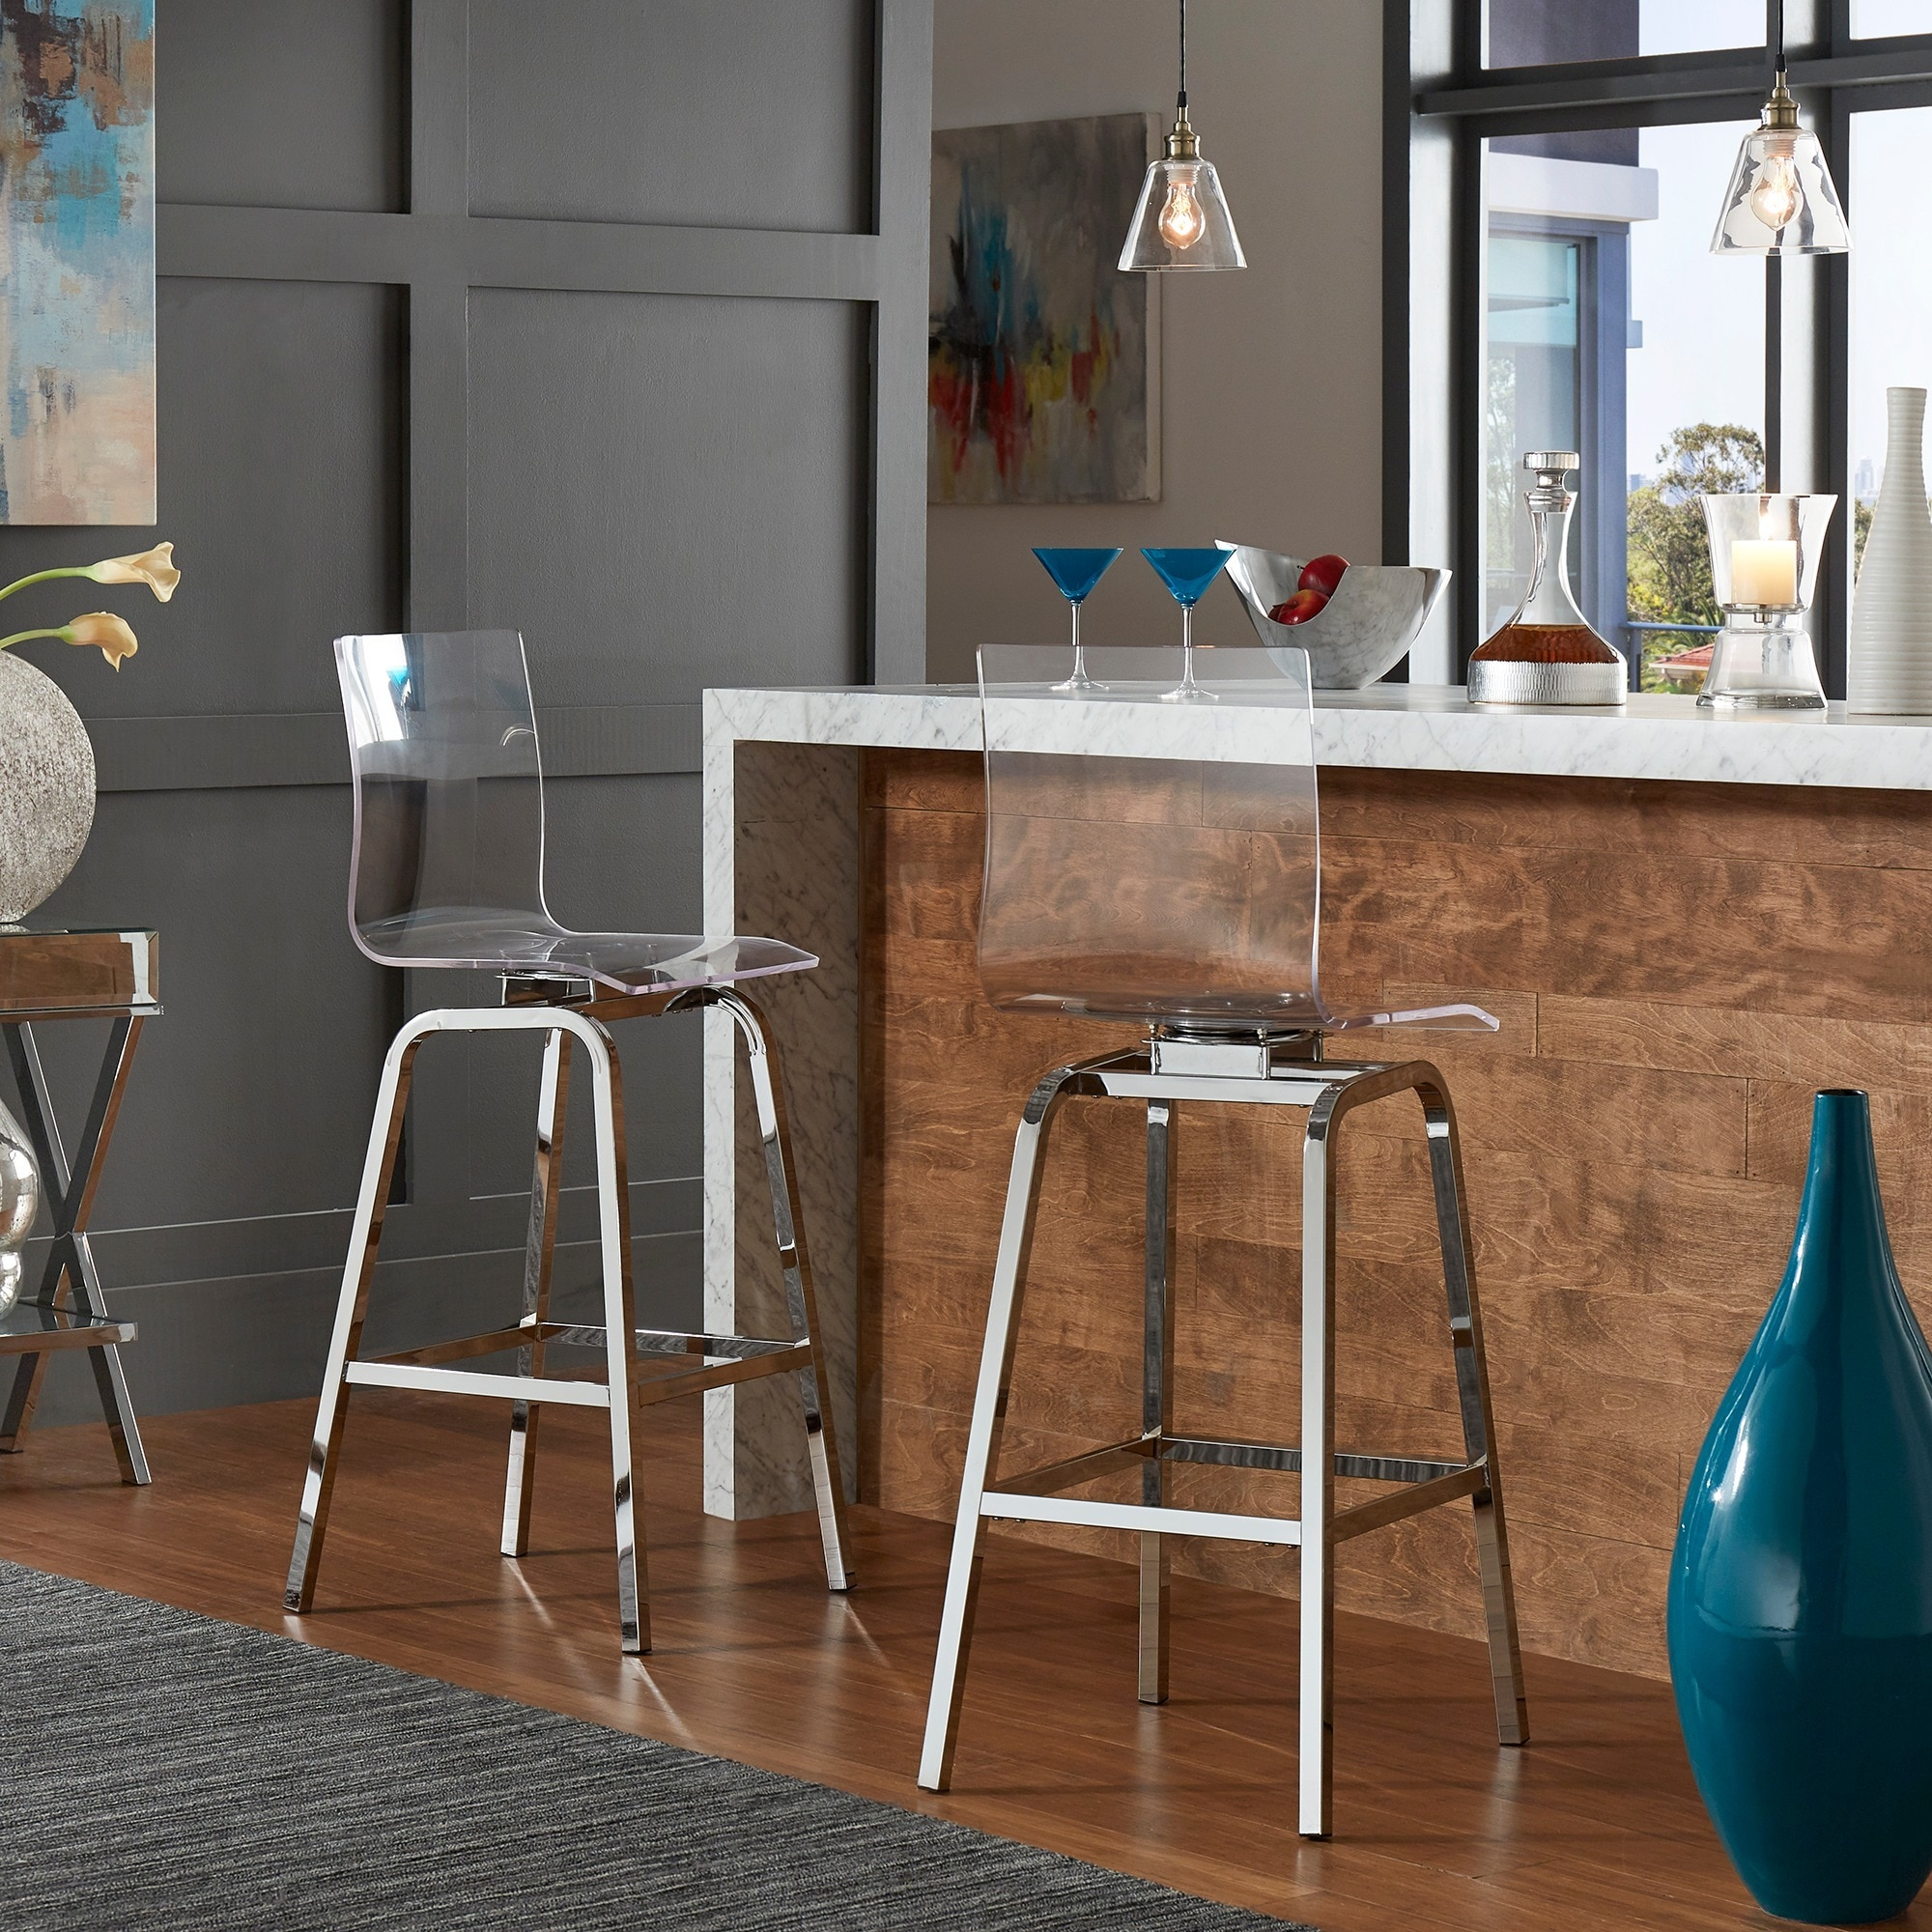 Shop miles clear acrylic swivel high back bar stools with back set of 2 by inspire q bold on sale free shipping today overstock com 12949902